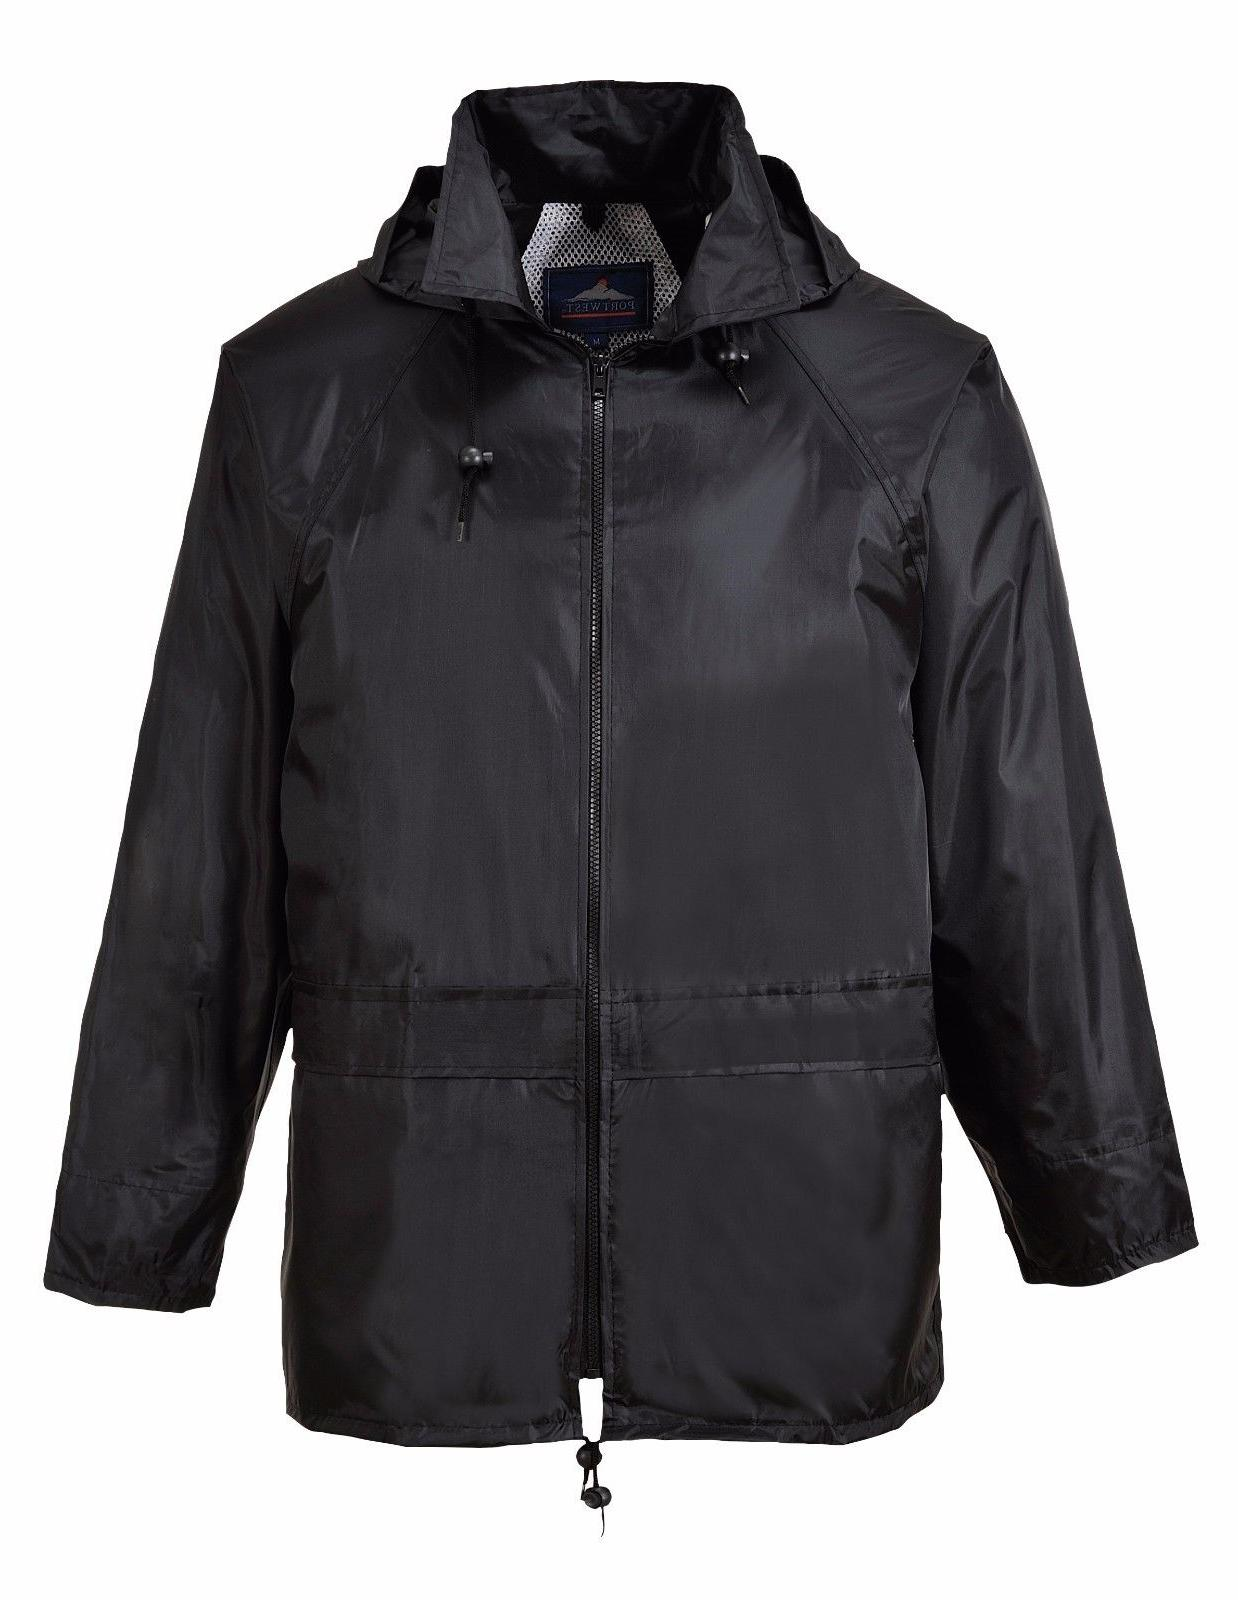 Portwest US440 Classic Jacket, with Hood